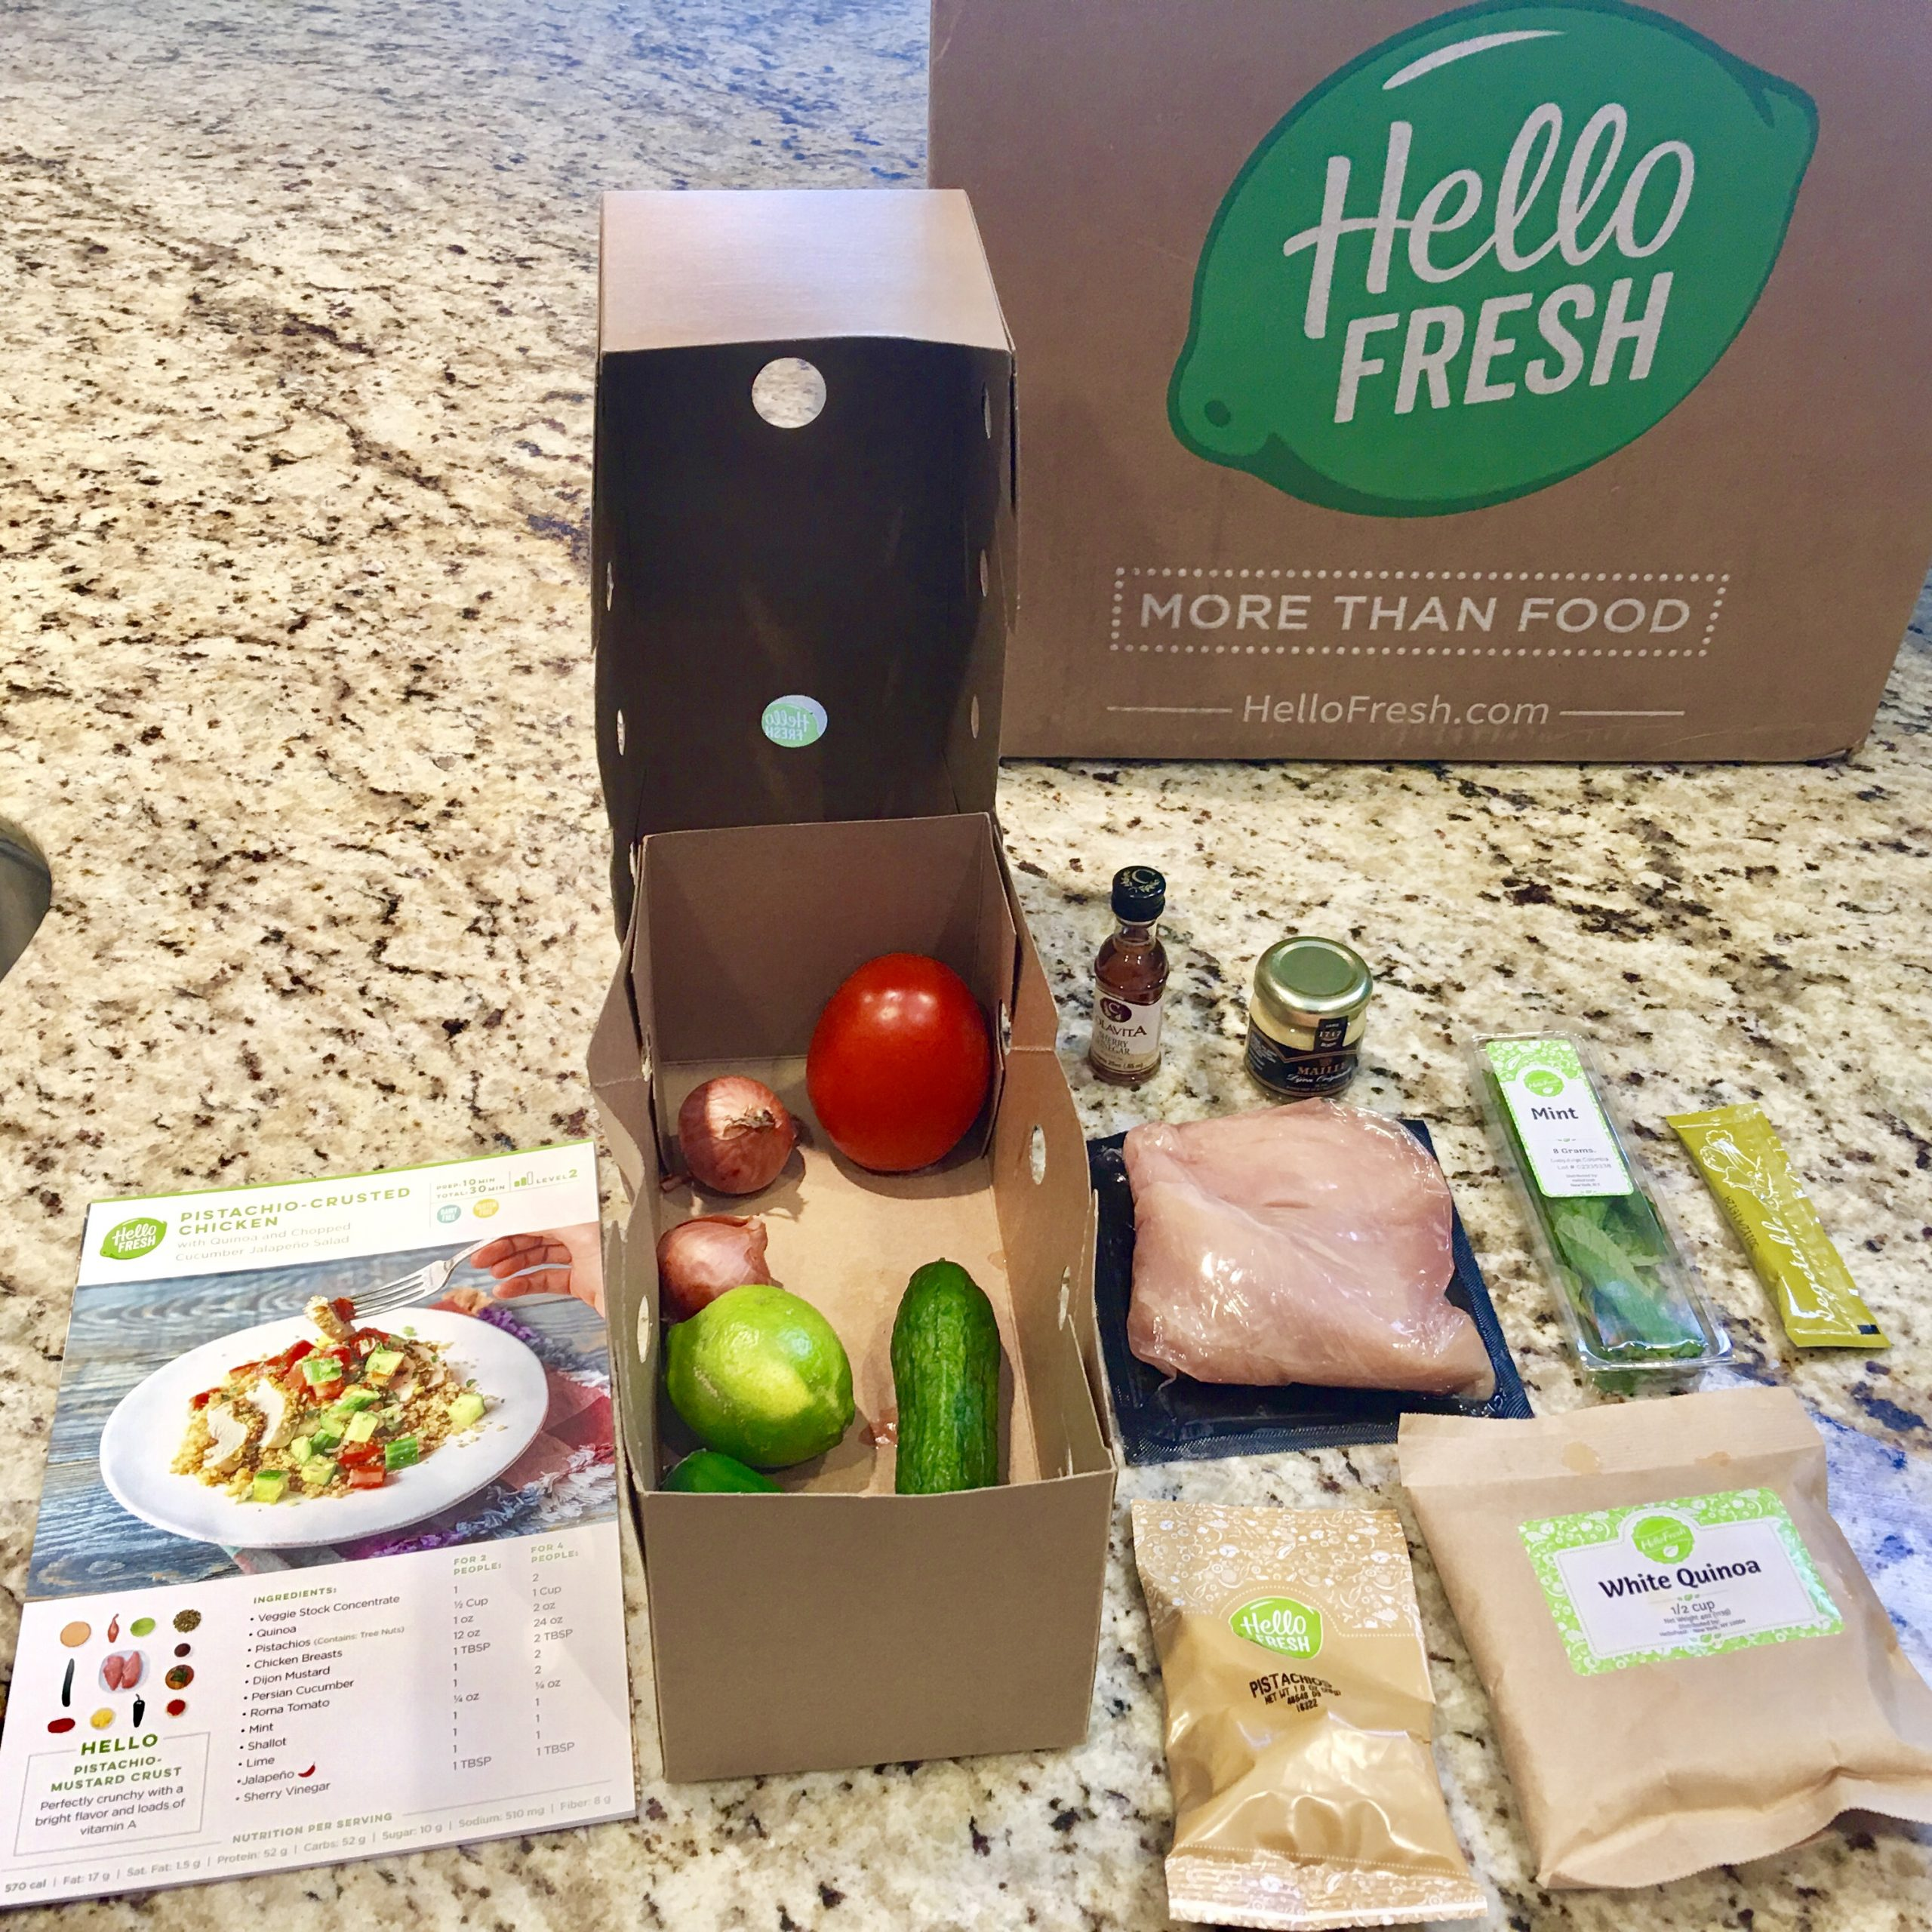 Meal Kit Delivery Service Hellofresh  Warranty Details